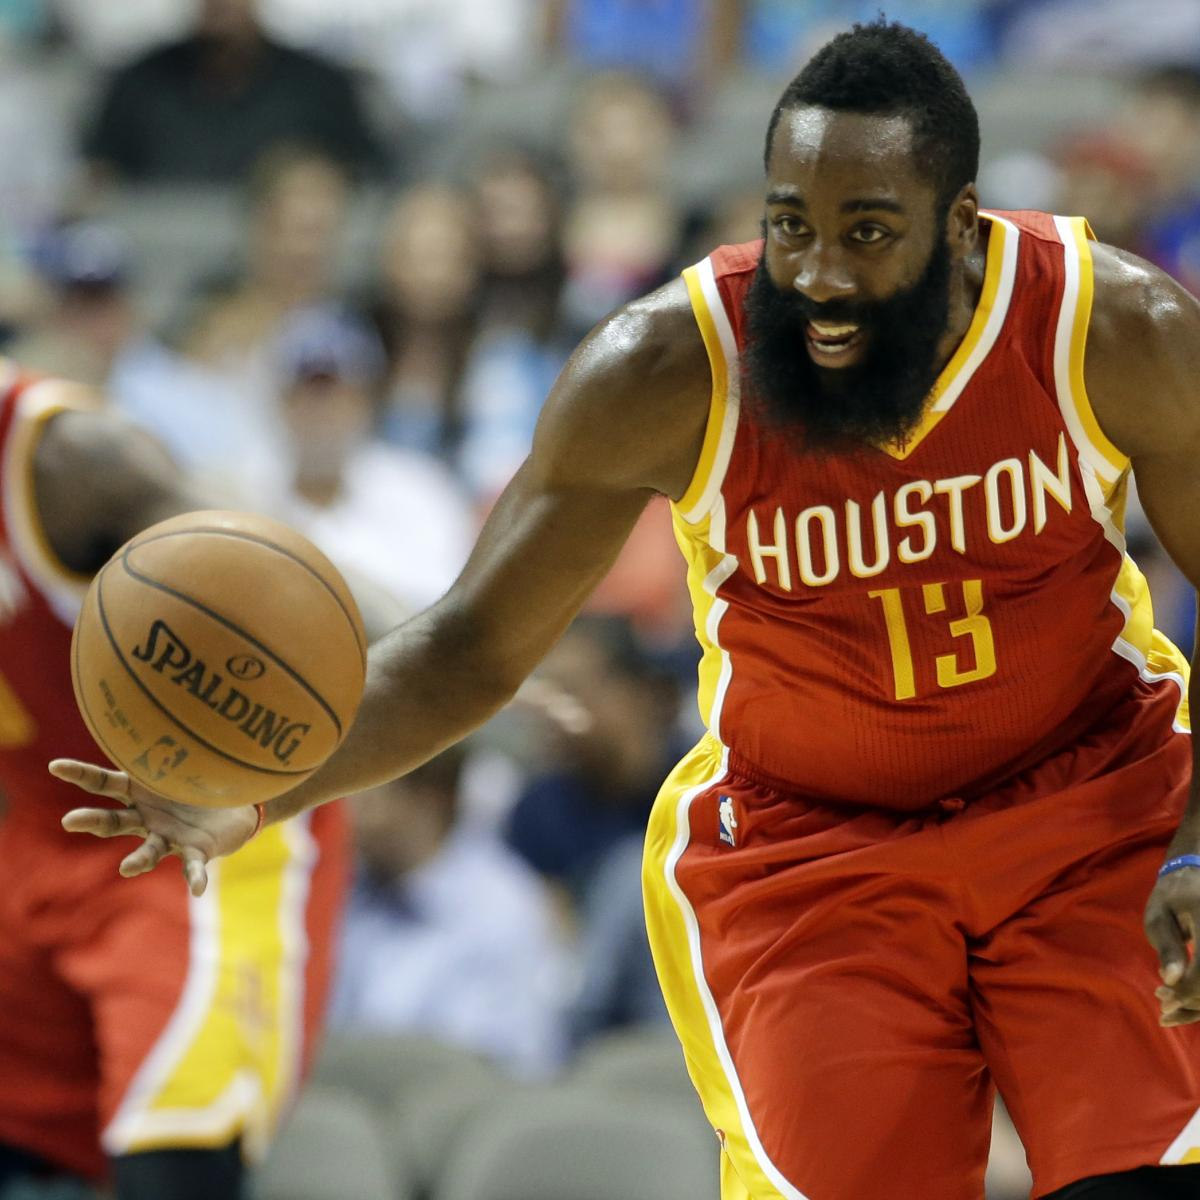 James Harden Injury Report: James Harden Injury: Updates On Rockets Star's Hamstring